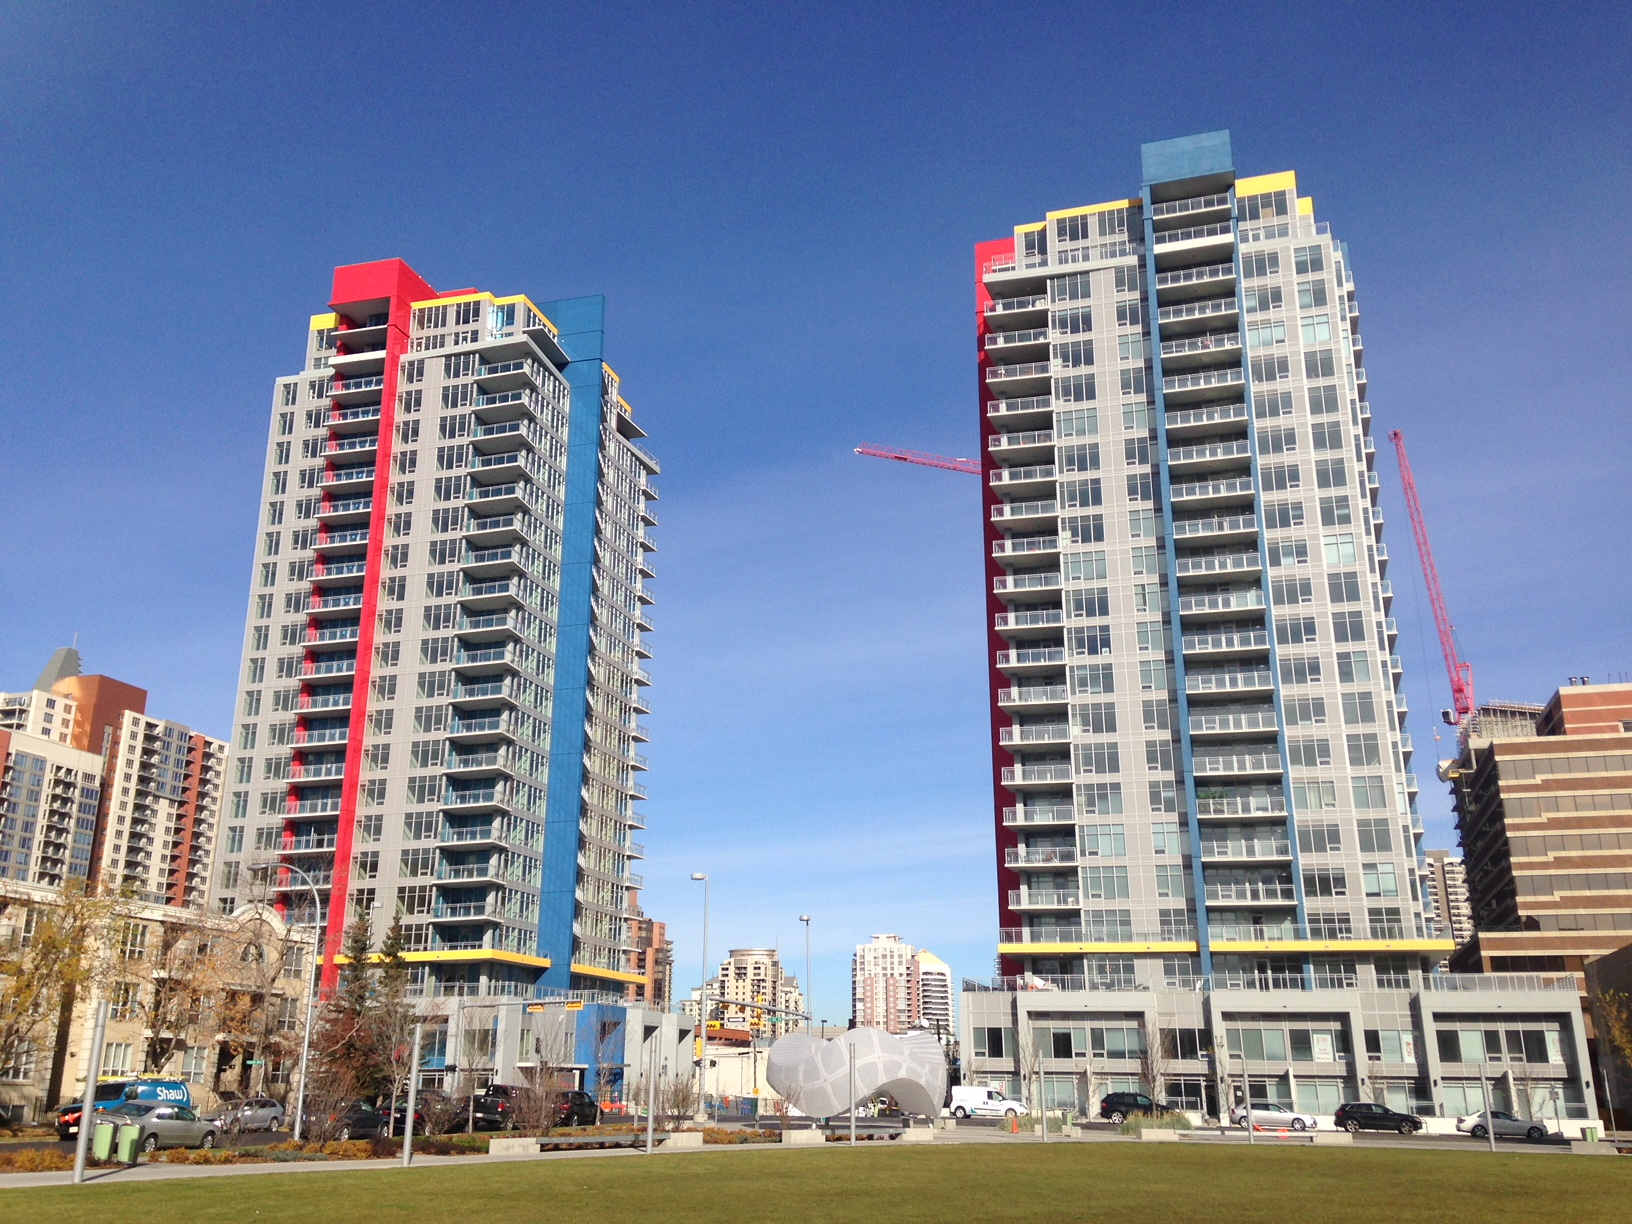 Funky new residential towers, next to Barb Scott Park.